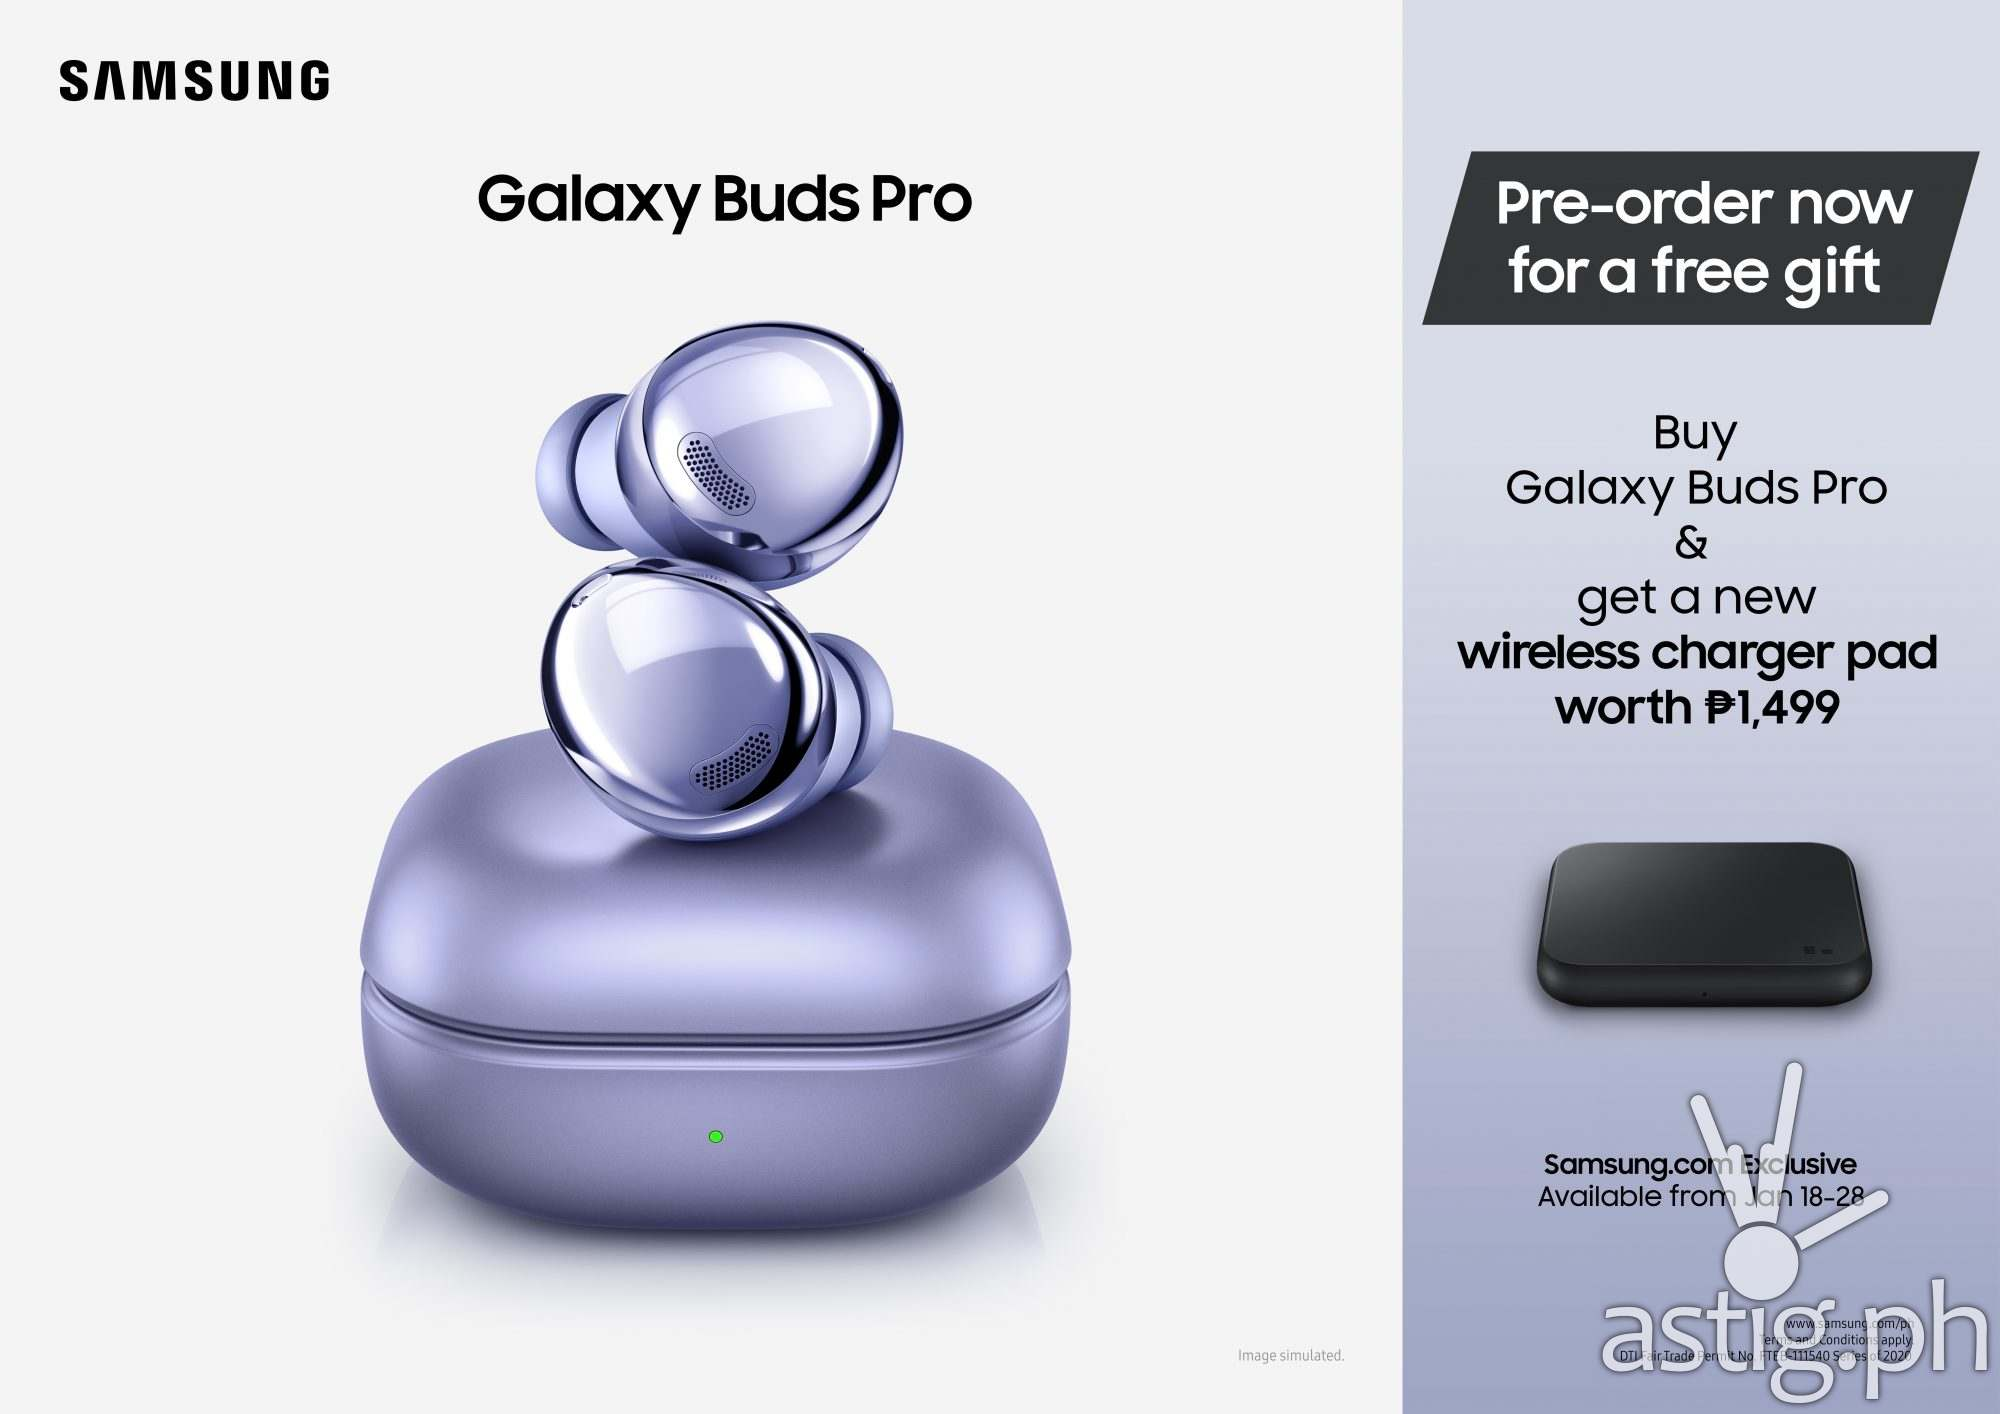 Galaxy Buds Pro Preorder price (Philippines)